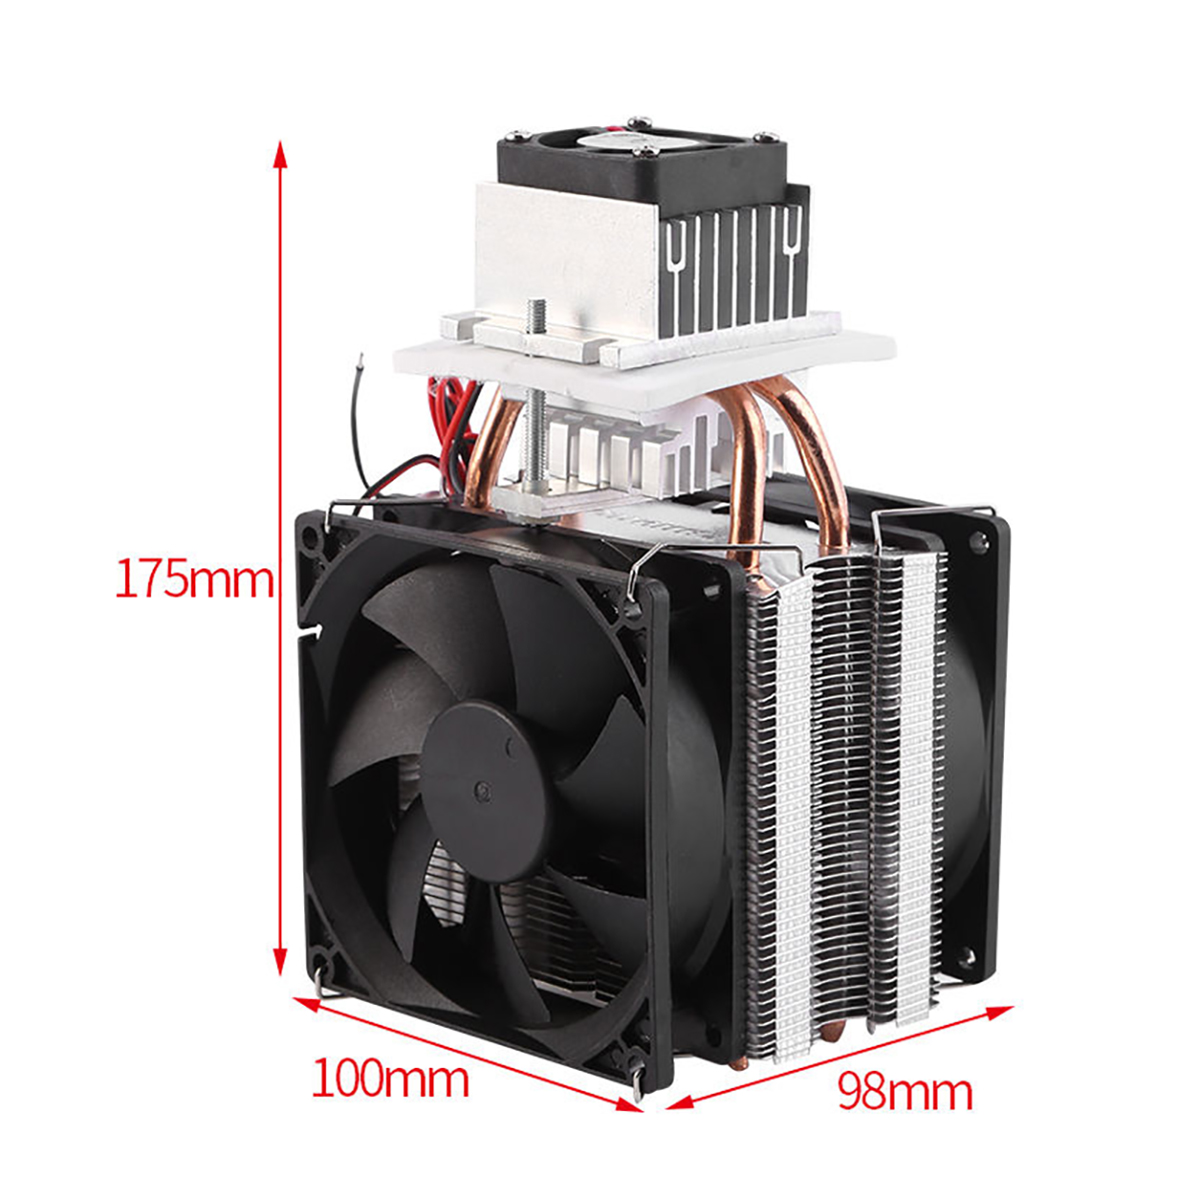 Mayitr Practical Thermoelectric Peltier Semiconductor Cooler Refrigeration Cooling System Heatsink Kit Fan 12V for Air Cooling thermoelectric peltier 60w cooler refrigeration semiconductor cooling system kit cooler fan finished set for computer cpu hot